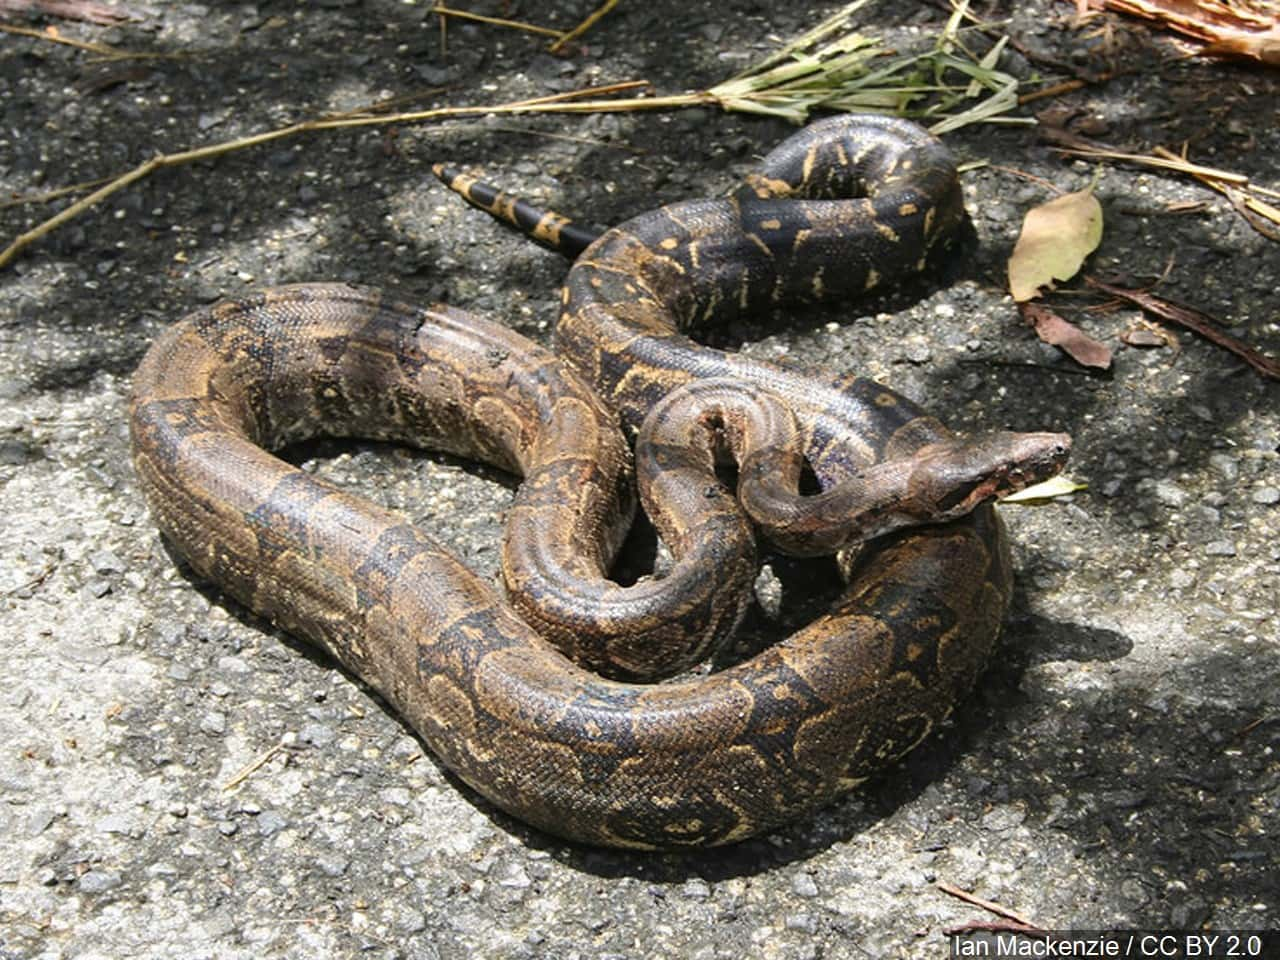 89-year-old Florida woman battles and kills 6-foot snake after it